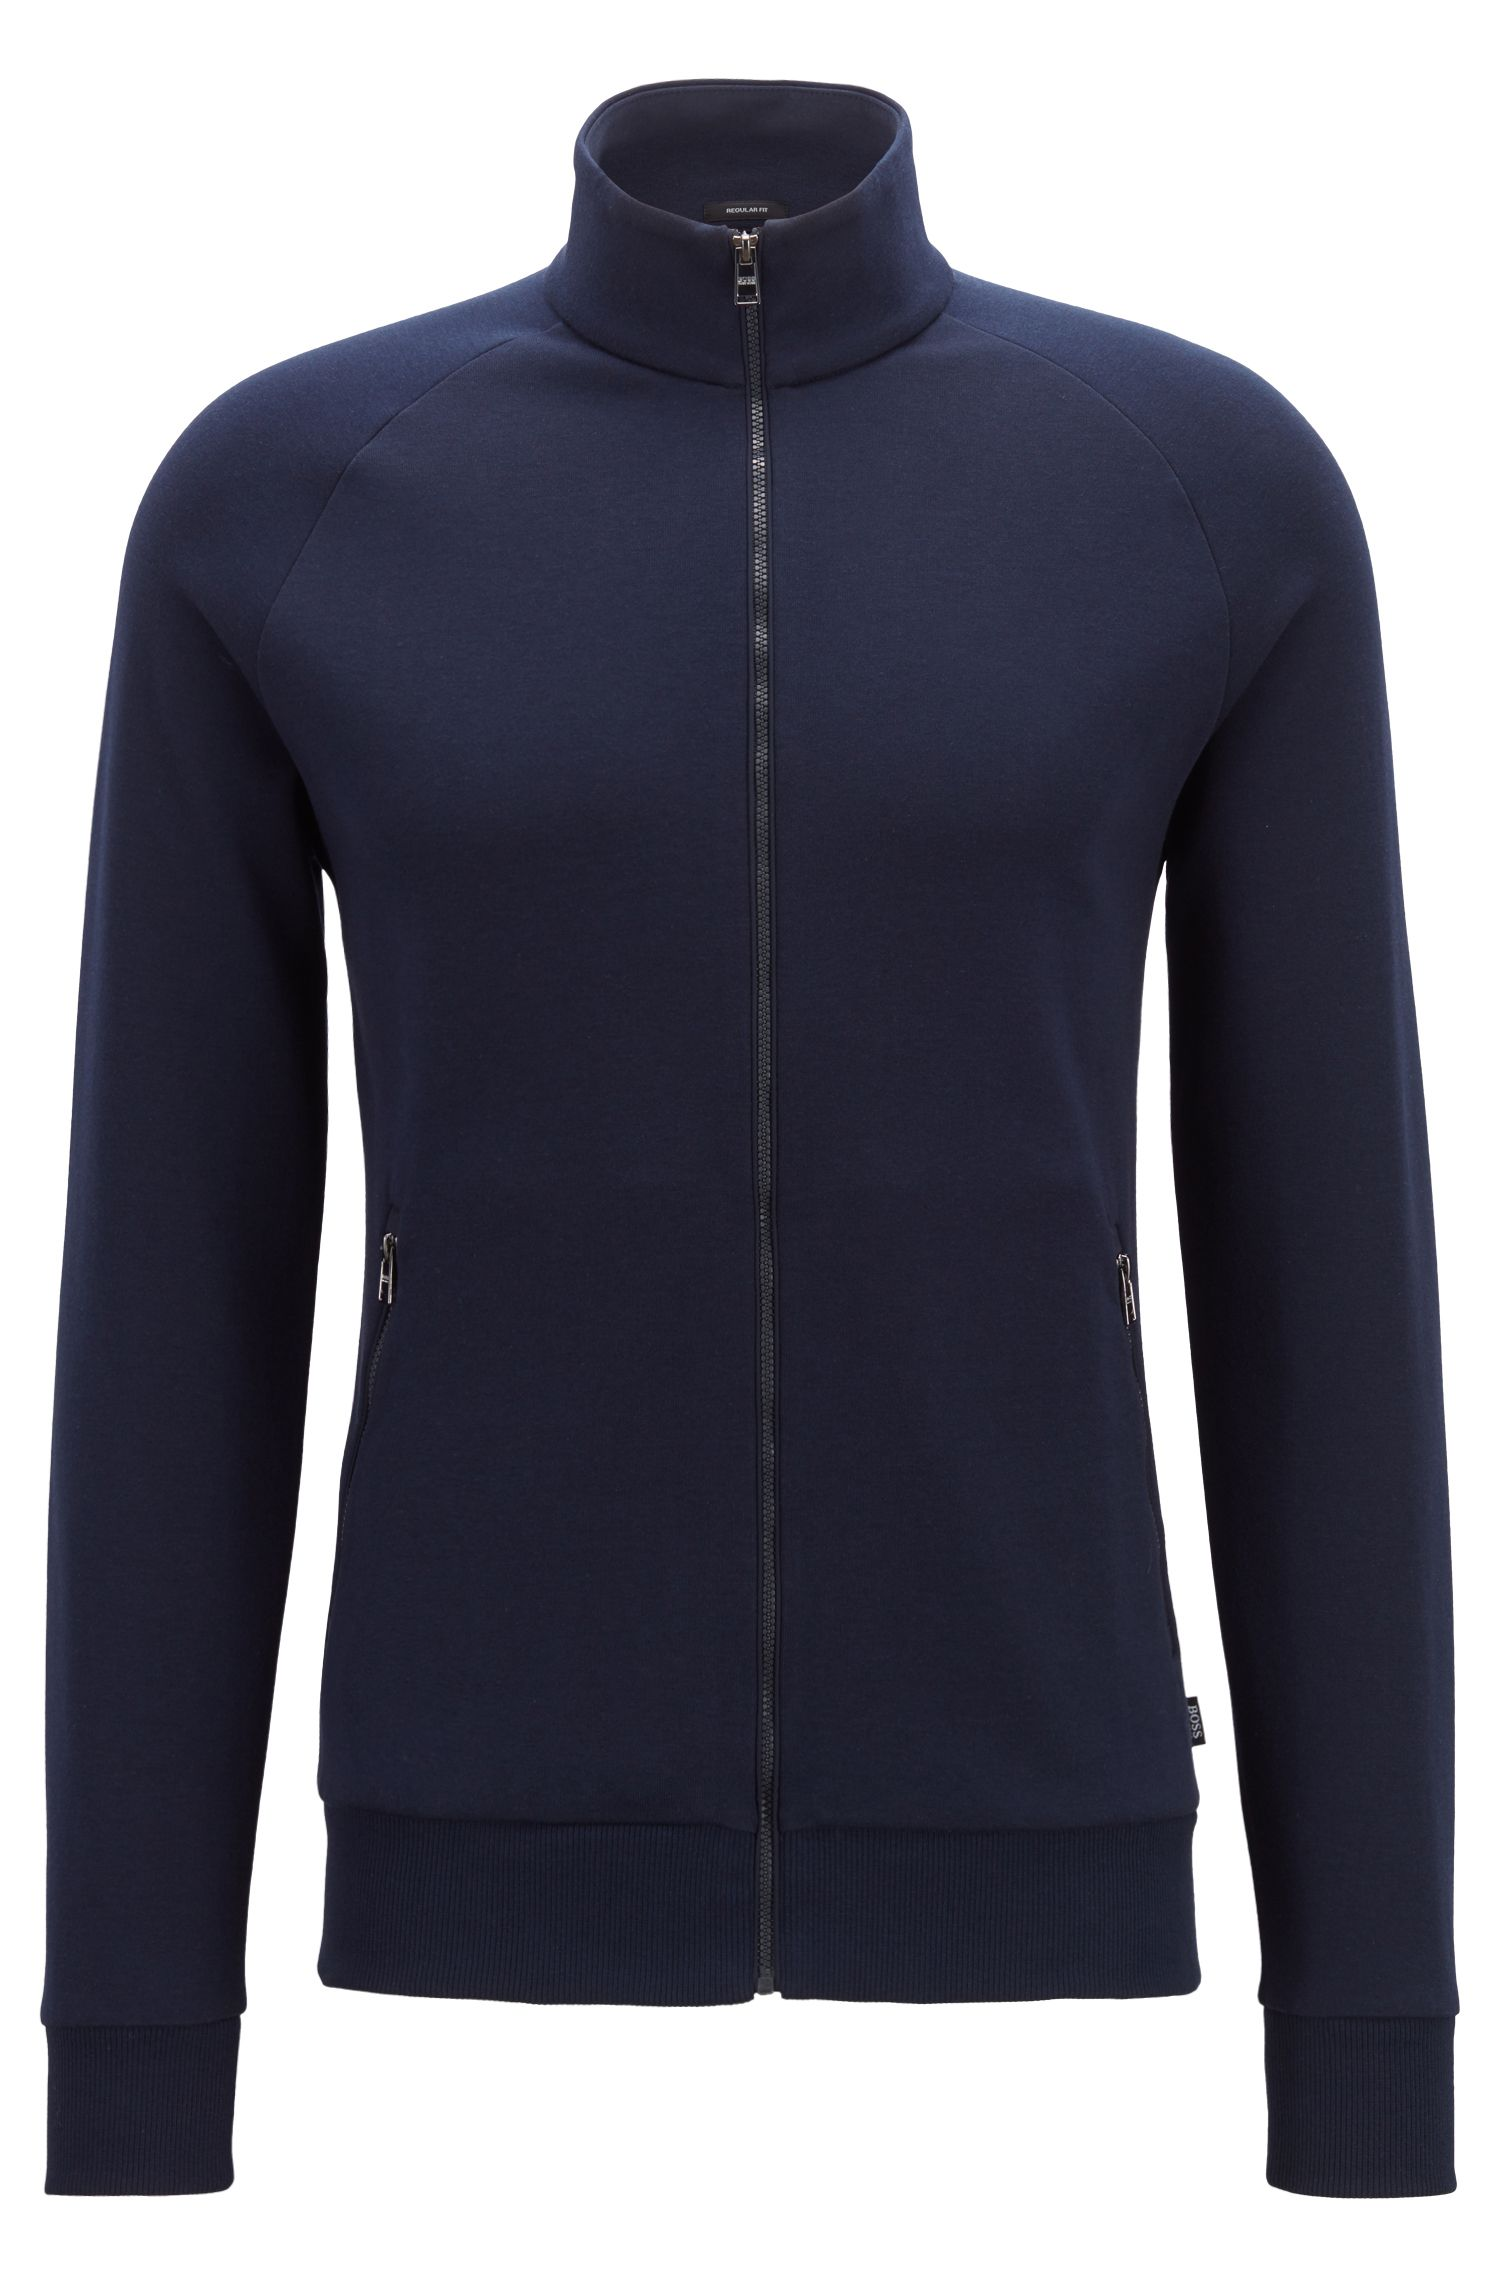 Giacca con zip integrale in jersey double-face, Blu scuro